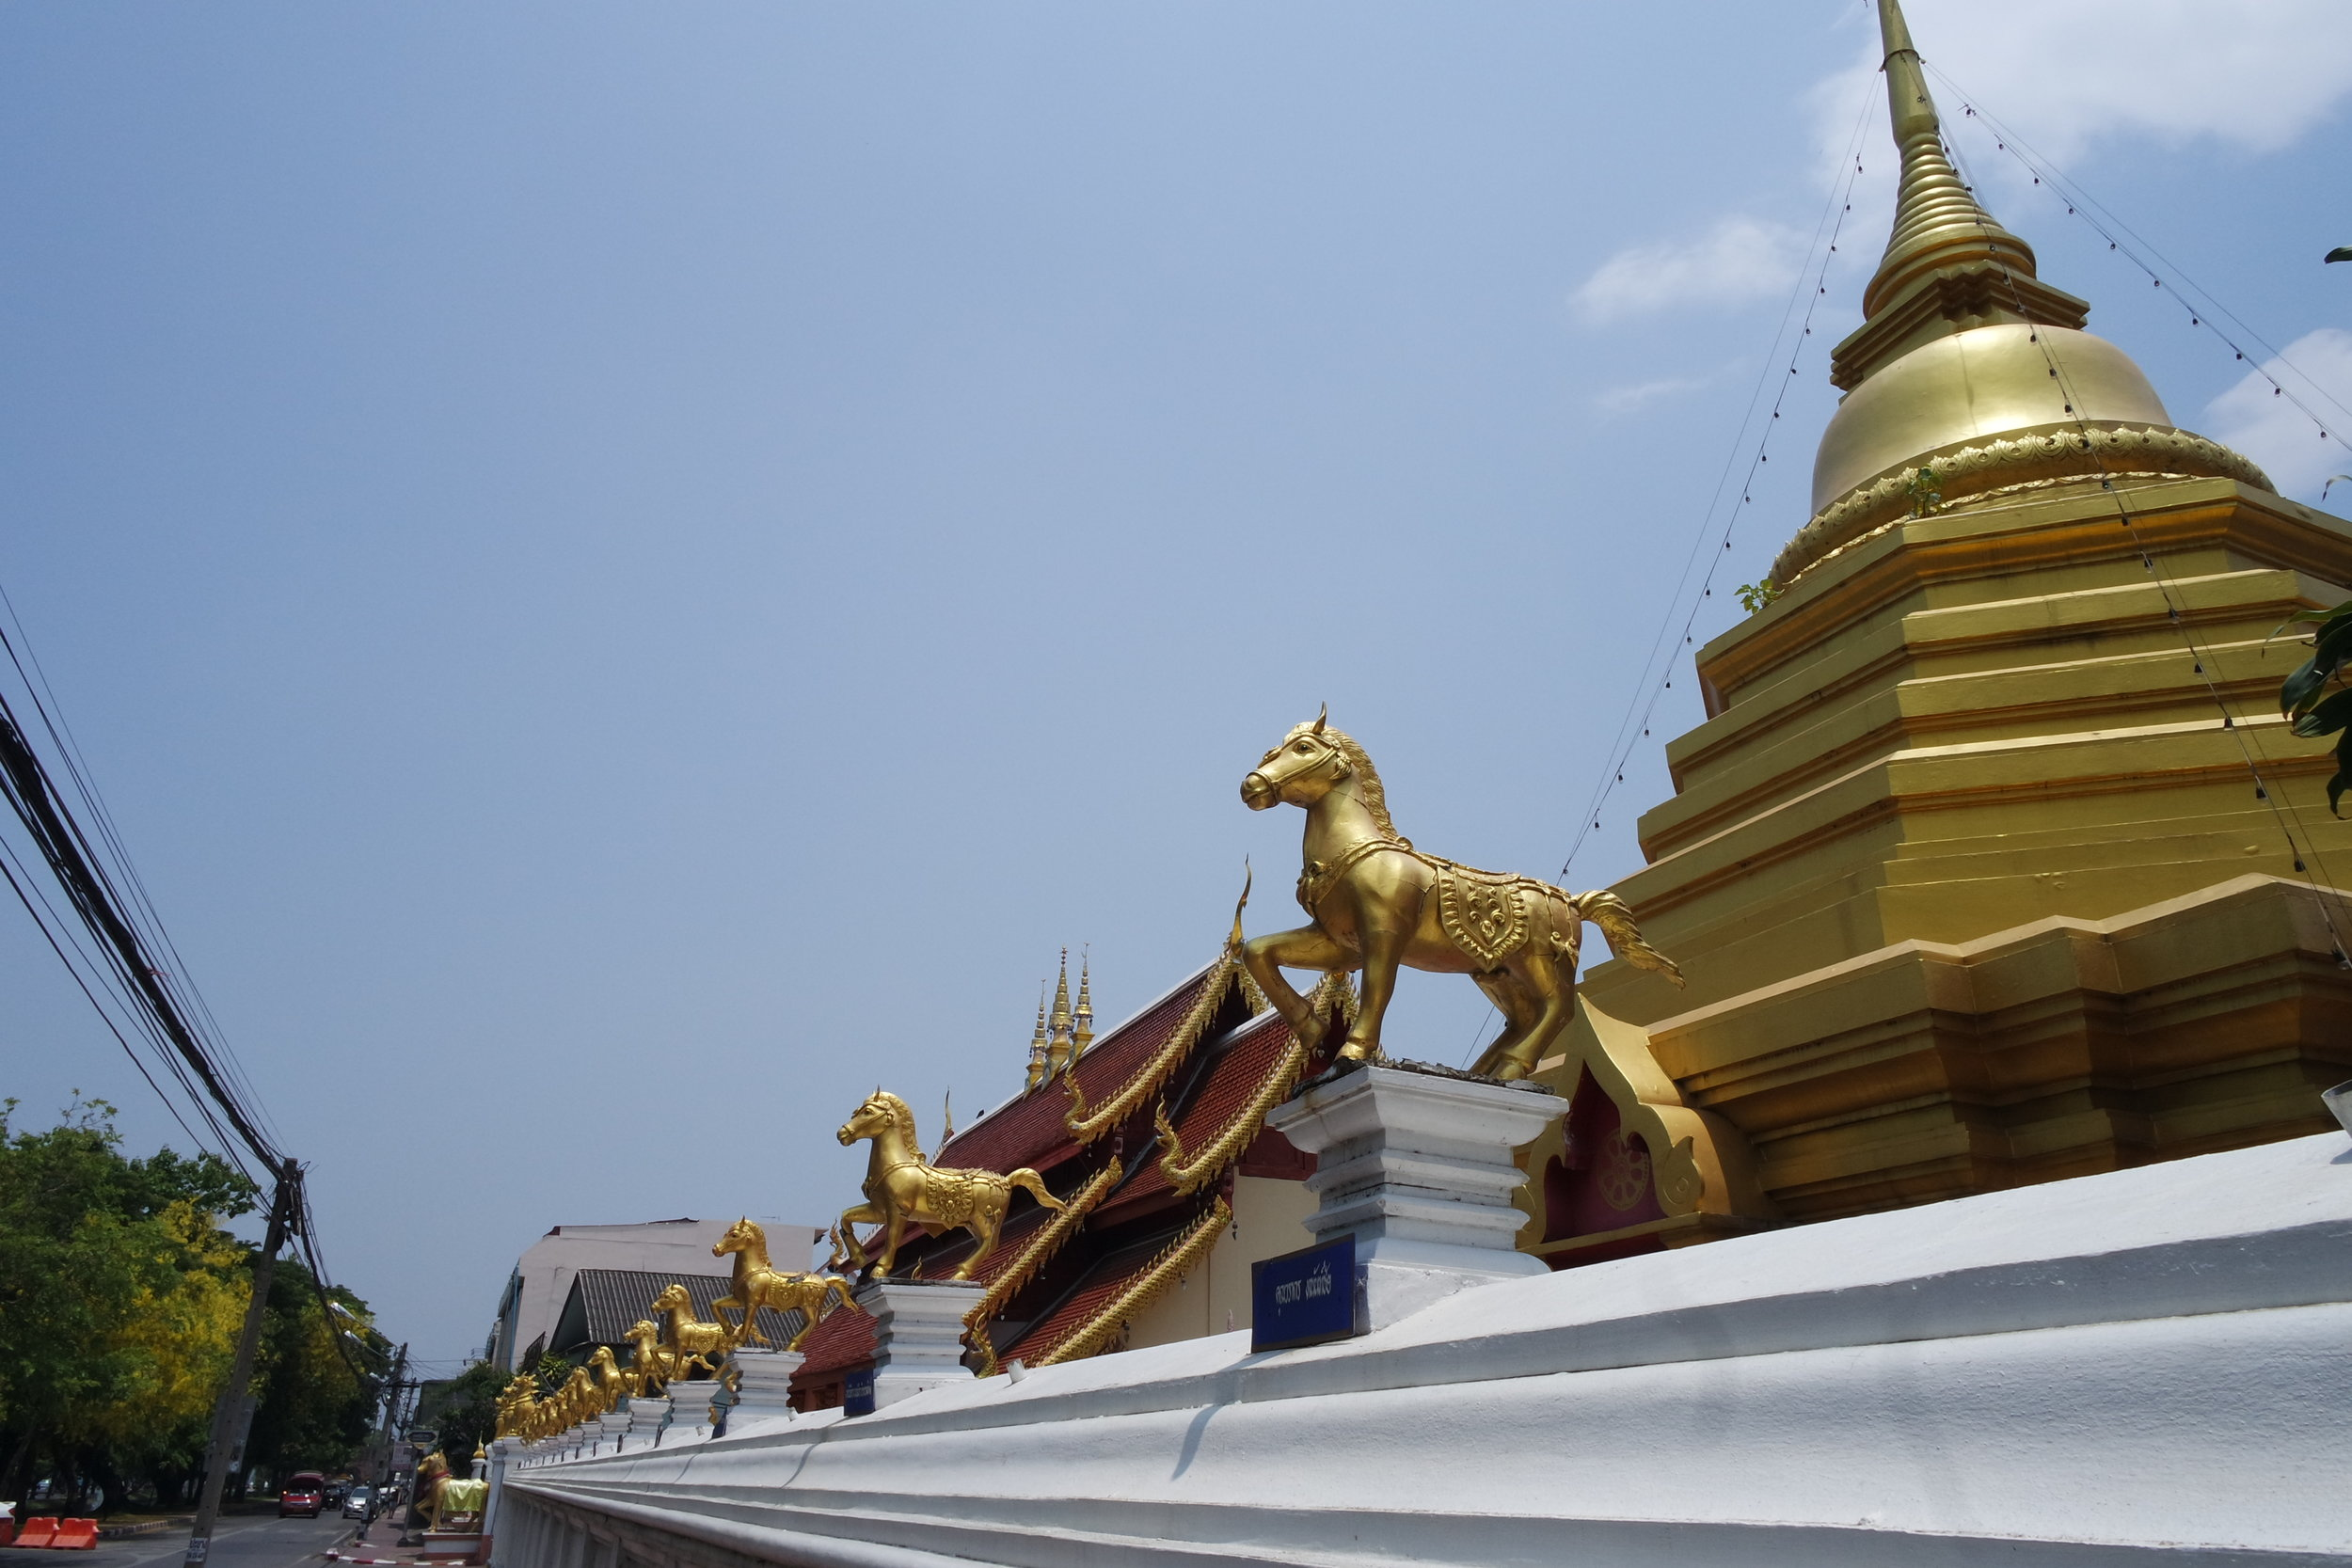 There's not a lot to see at Wat Kuan Kama, aside from the line of horses on the wall enclosure